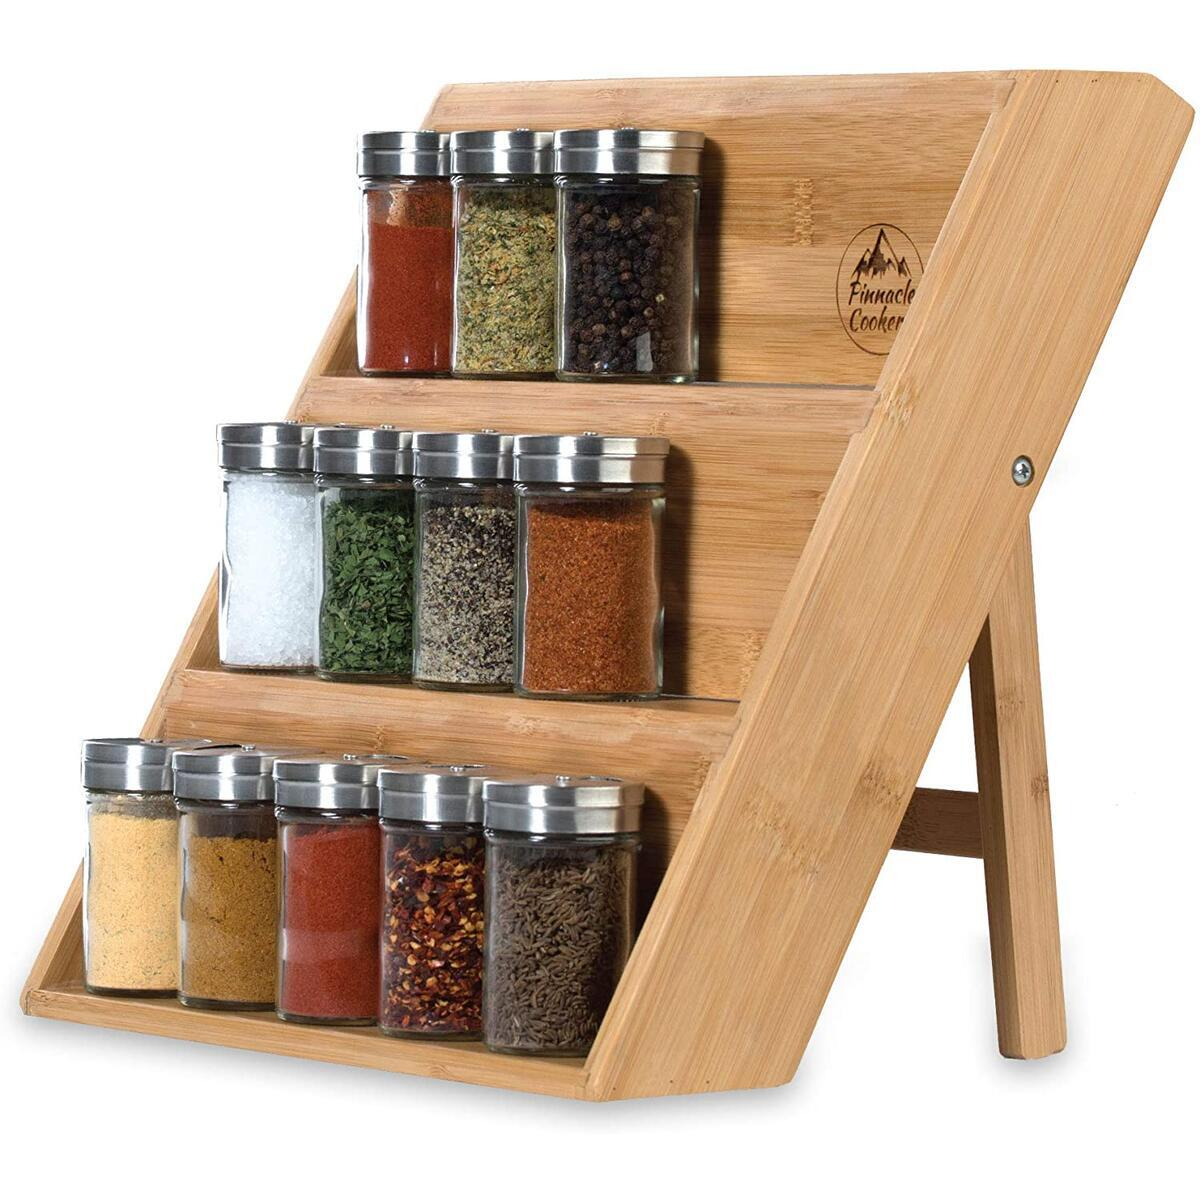 Pinnacle Cookery Bamboo Spice Rack Organizer for Countertop - Eco Friendly Seasoning Organizer 3-Tier Spice Shelf - Space Saving Wooden Spice Rack